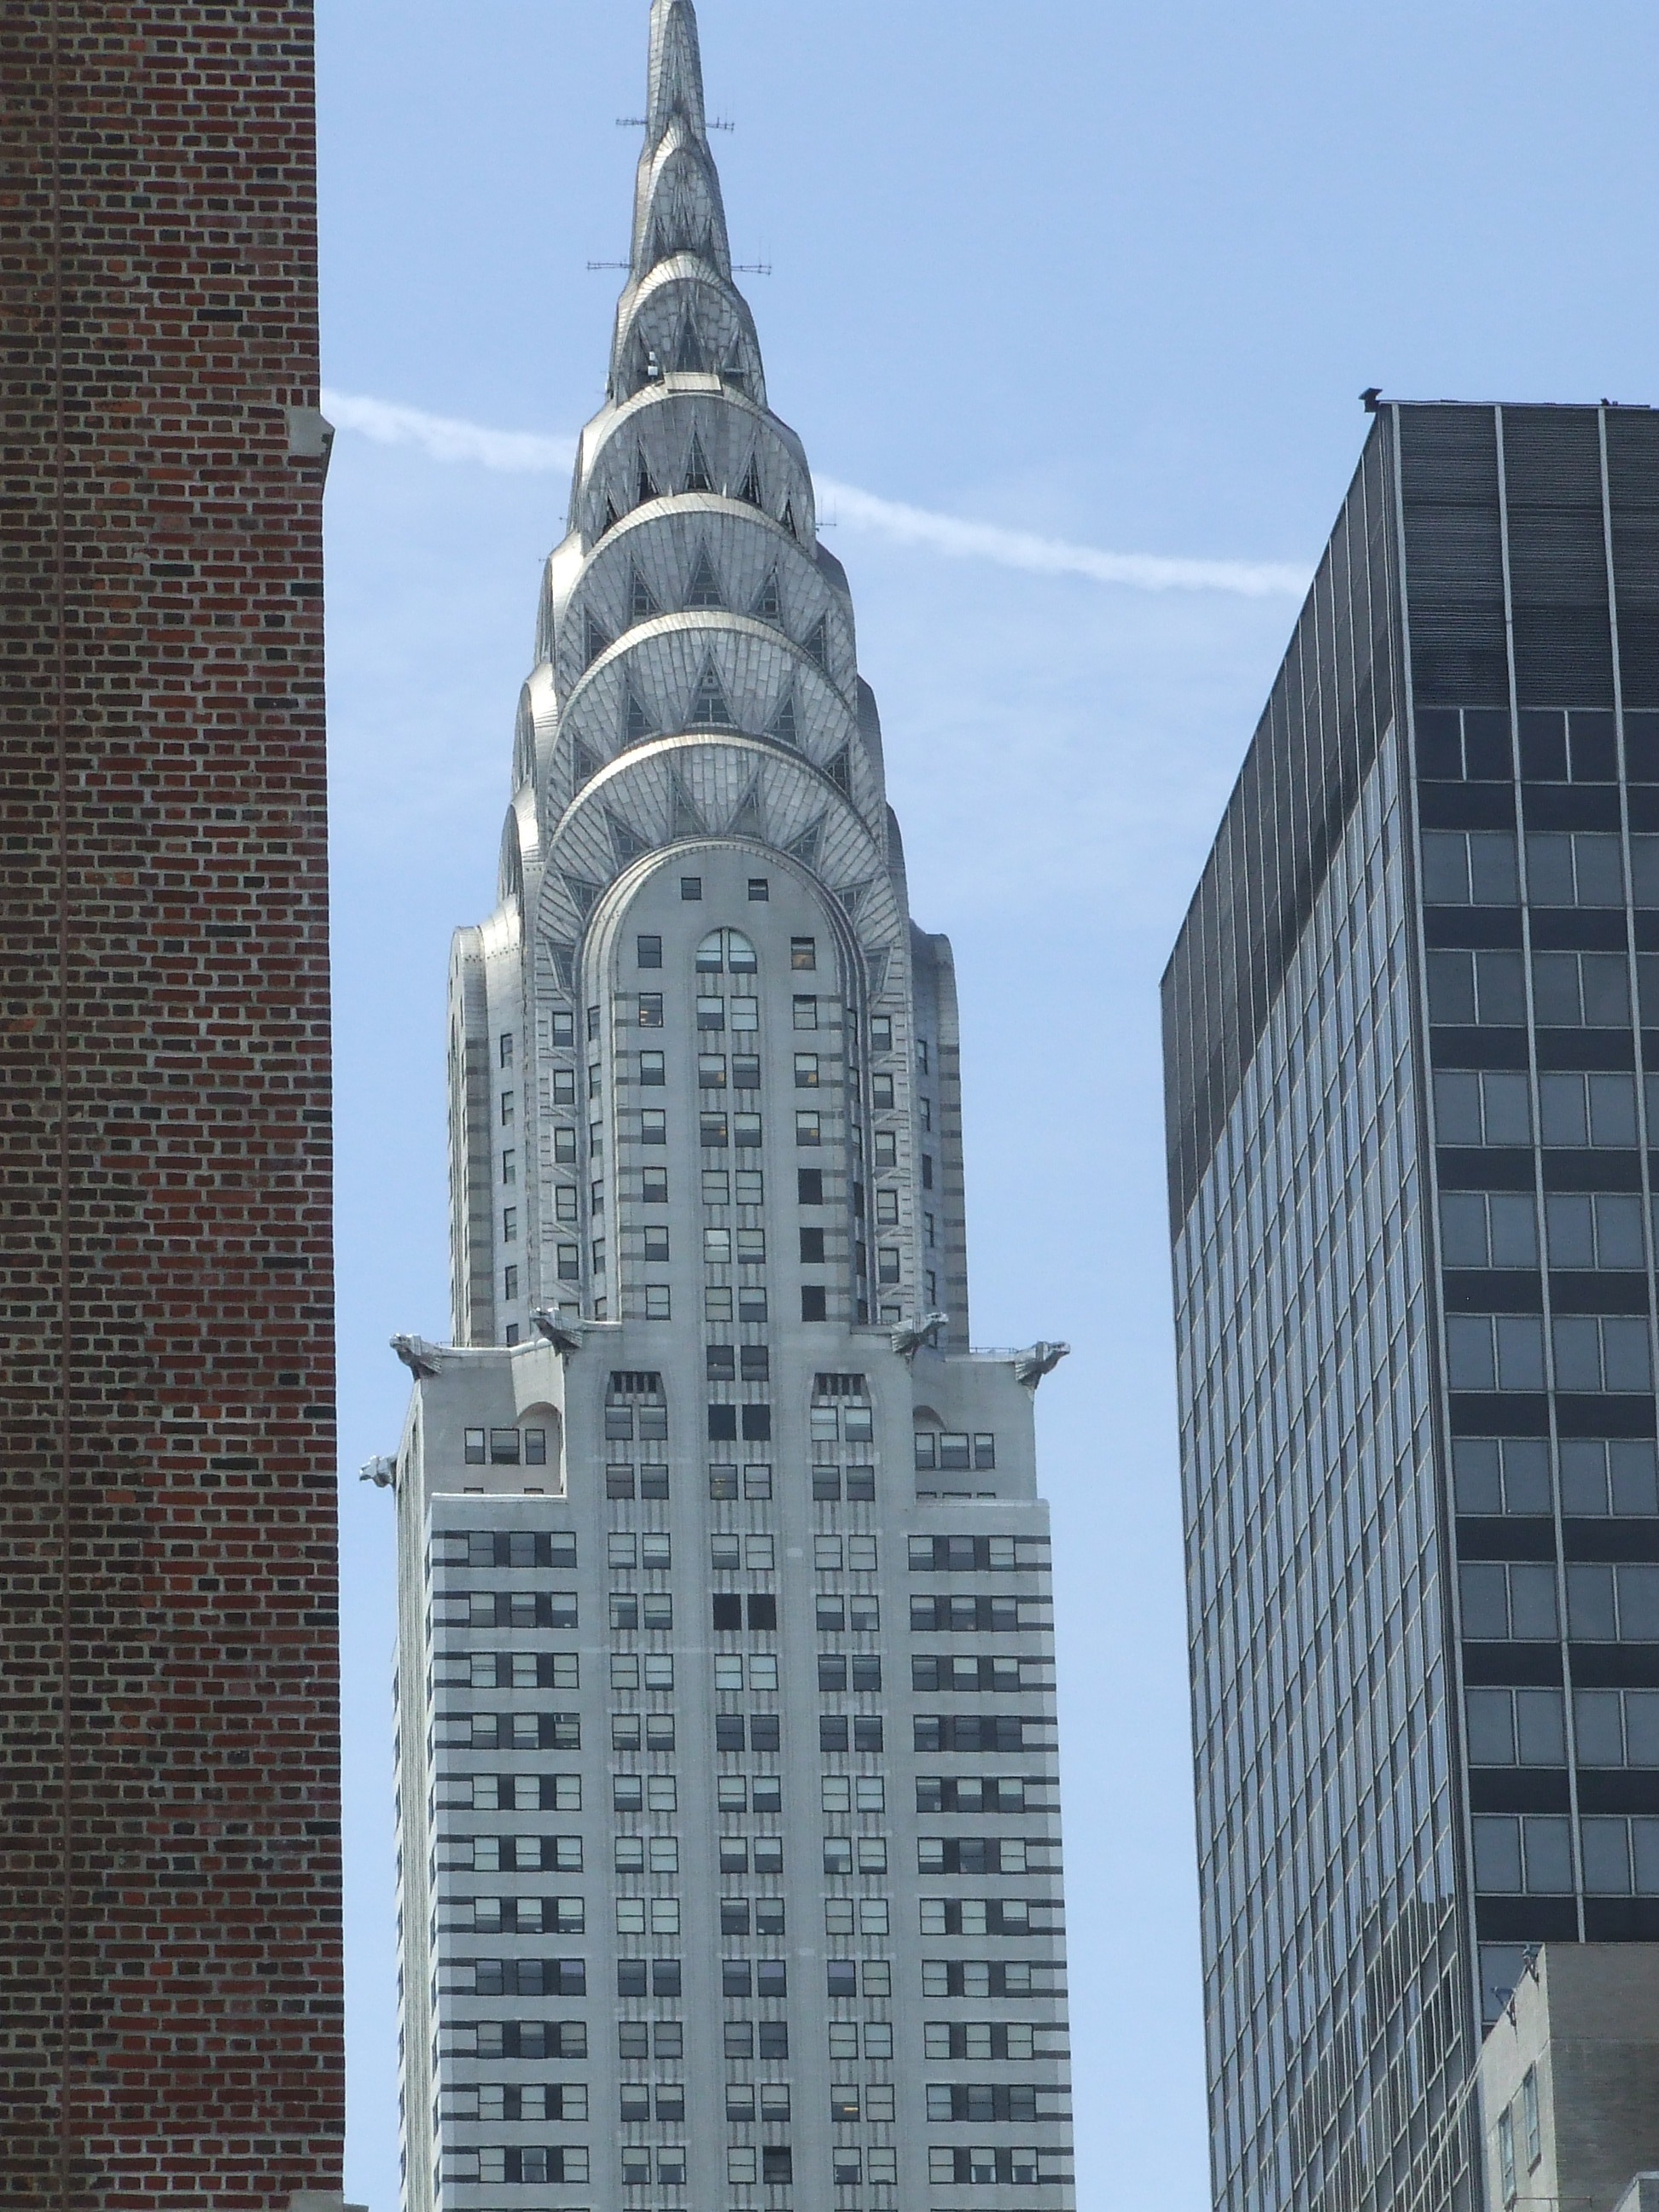 0358New_York_City_Chrysler_Building